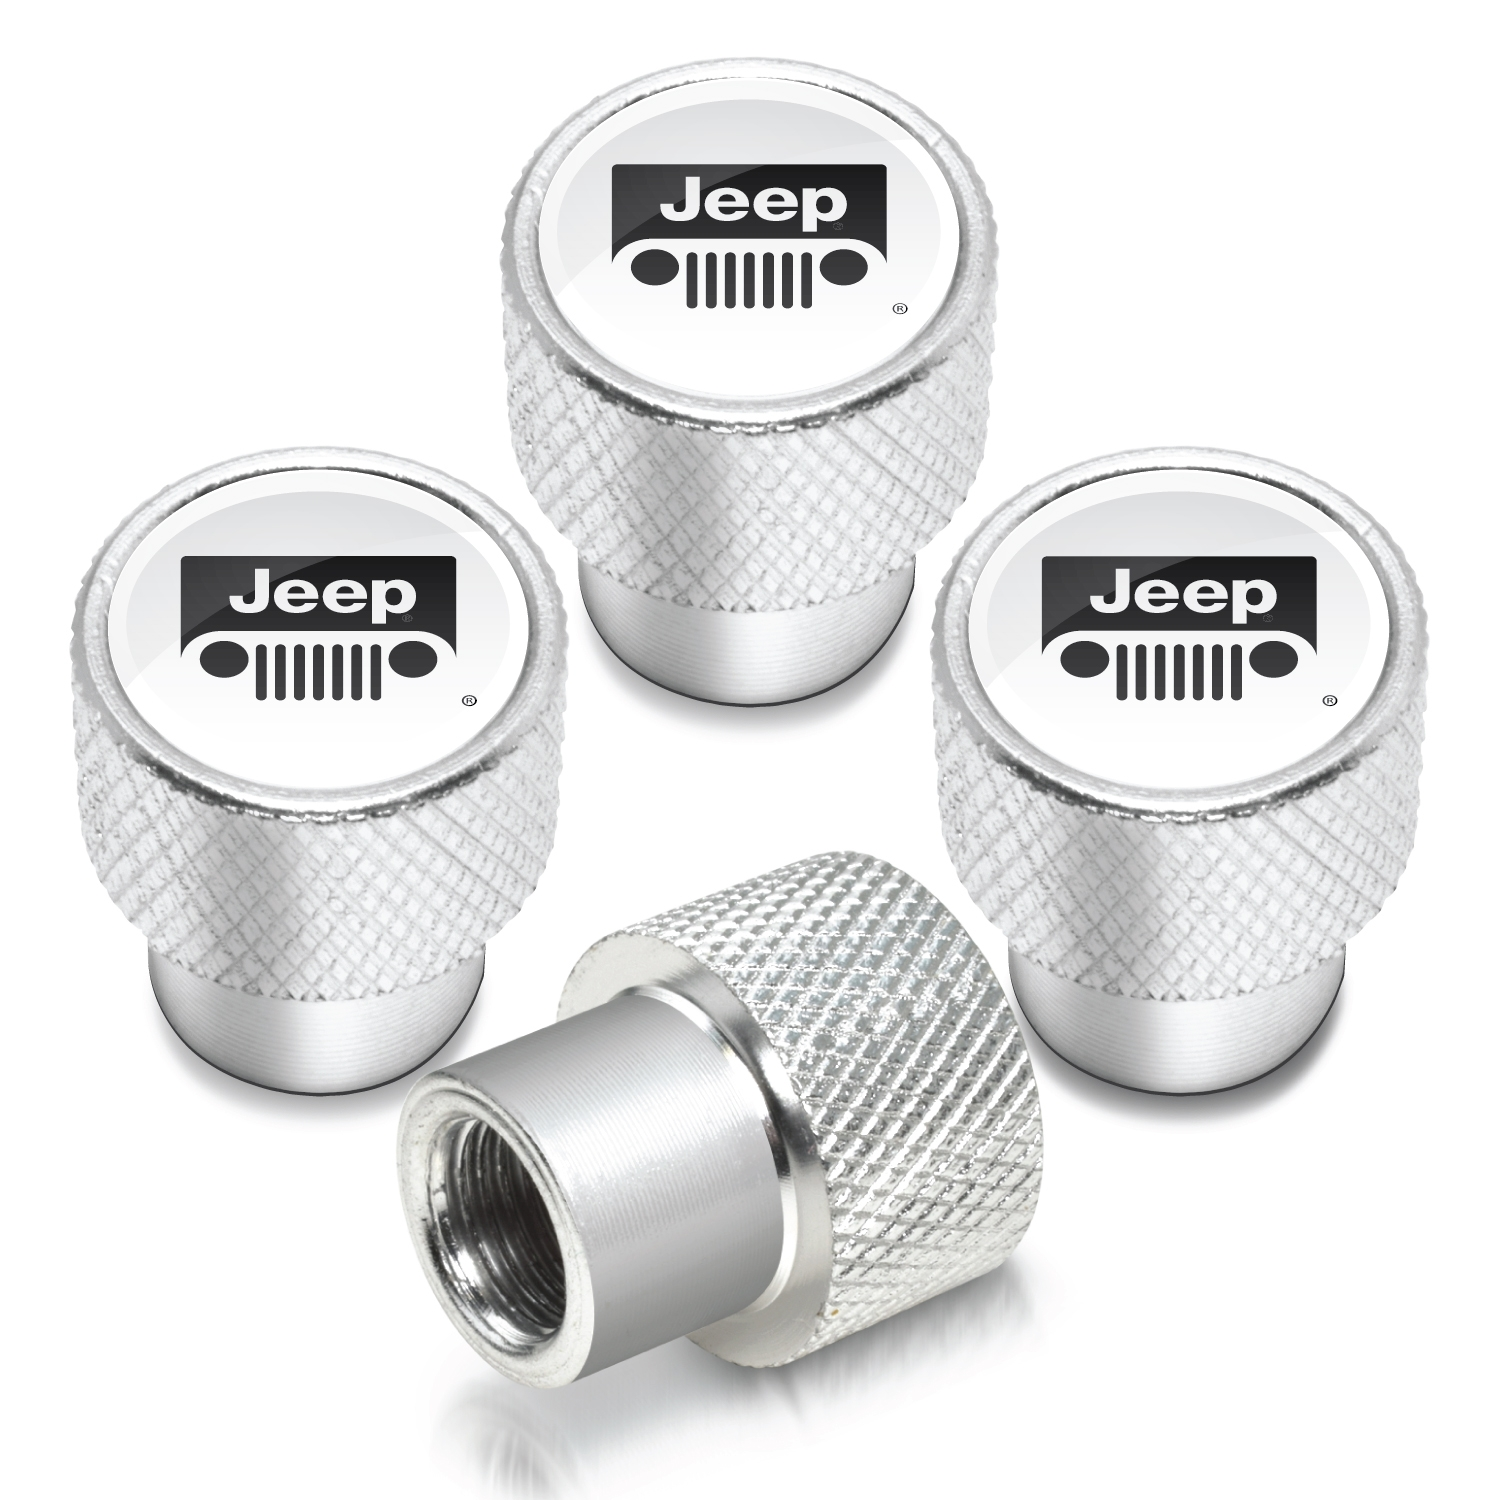 Jeep Grill in White on Shining Silver Aluminum Tire Valve Stem Caps